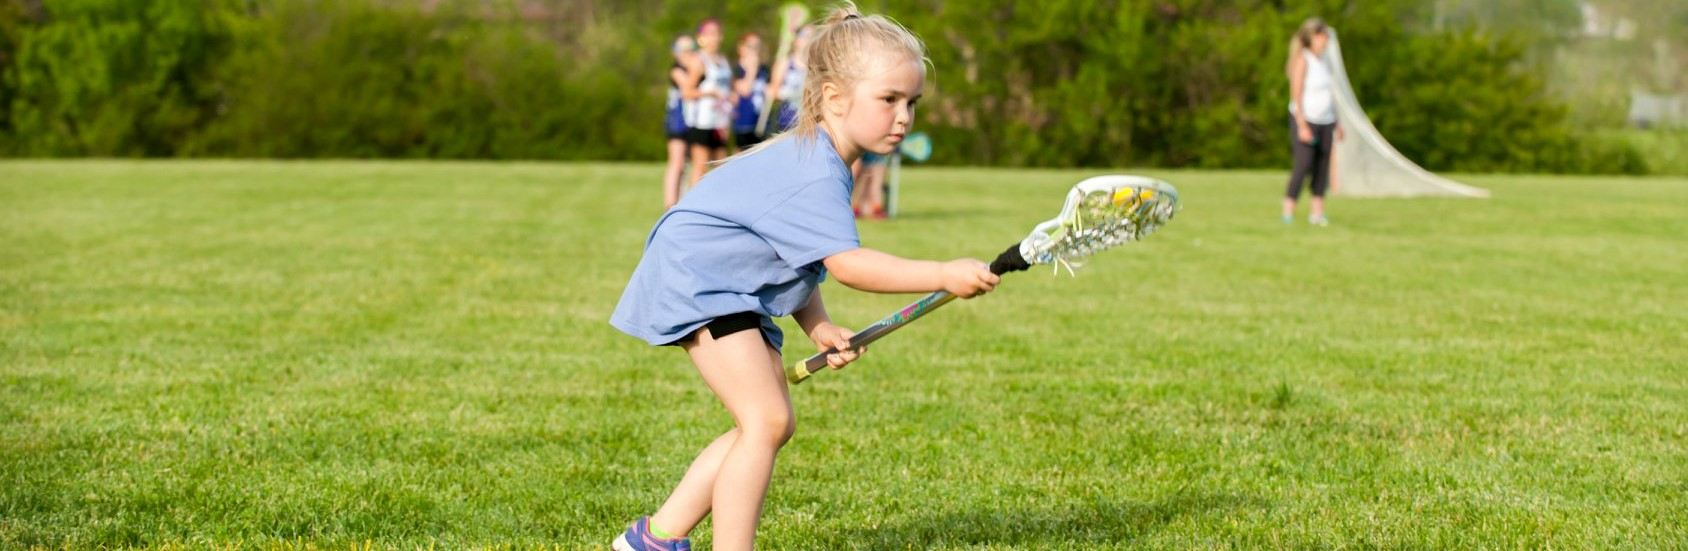 Lacrosse Athlete Development Model